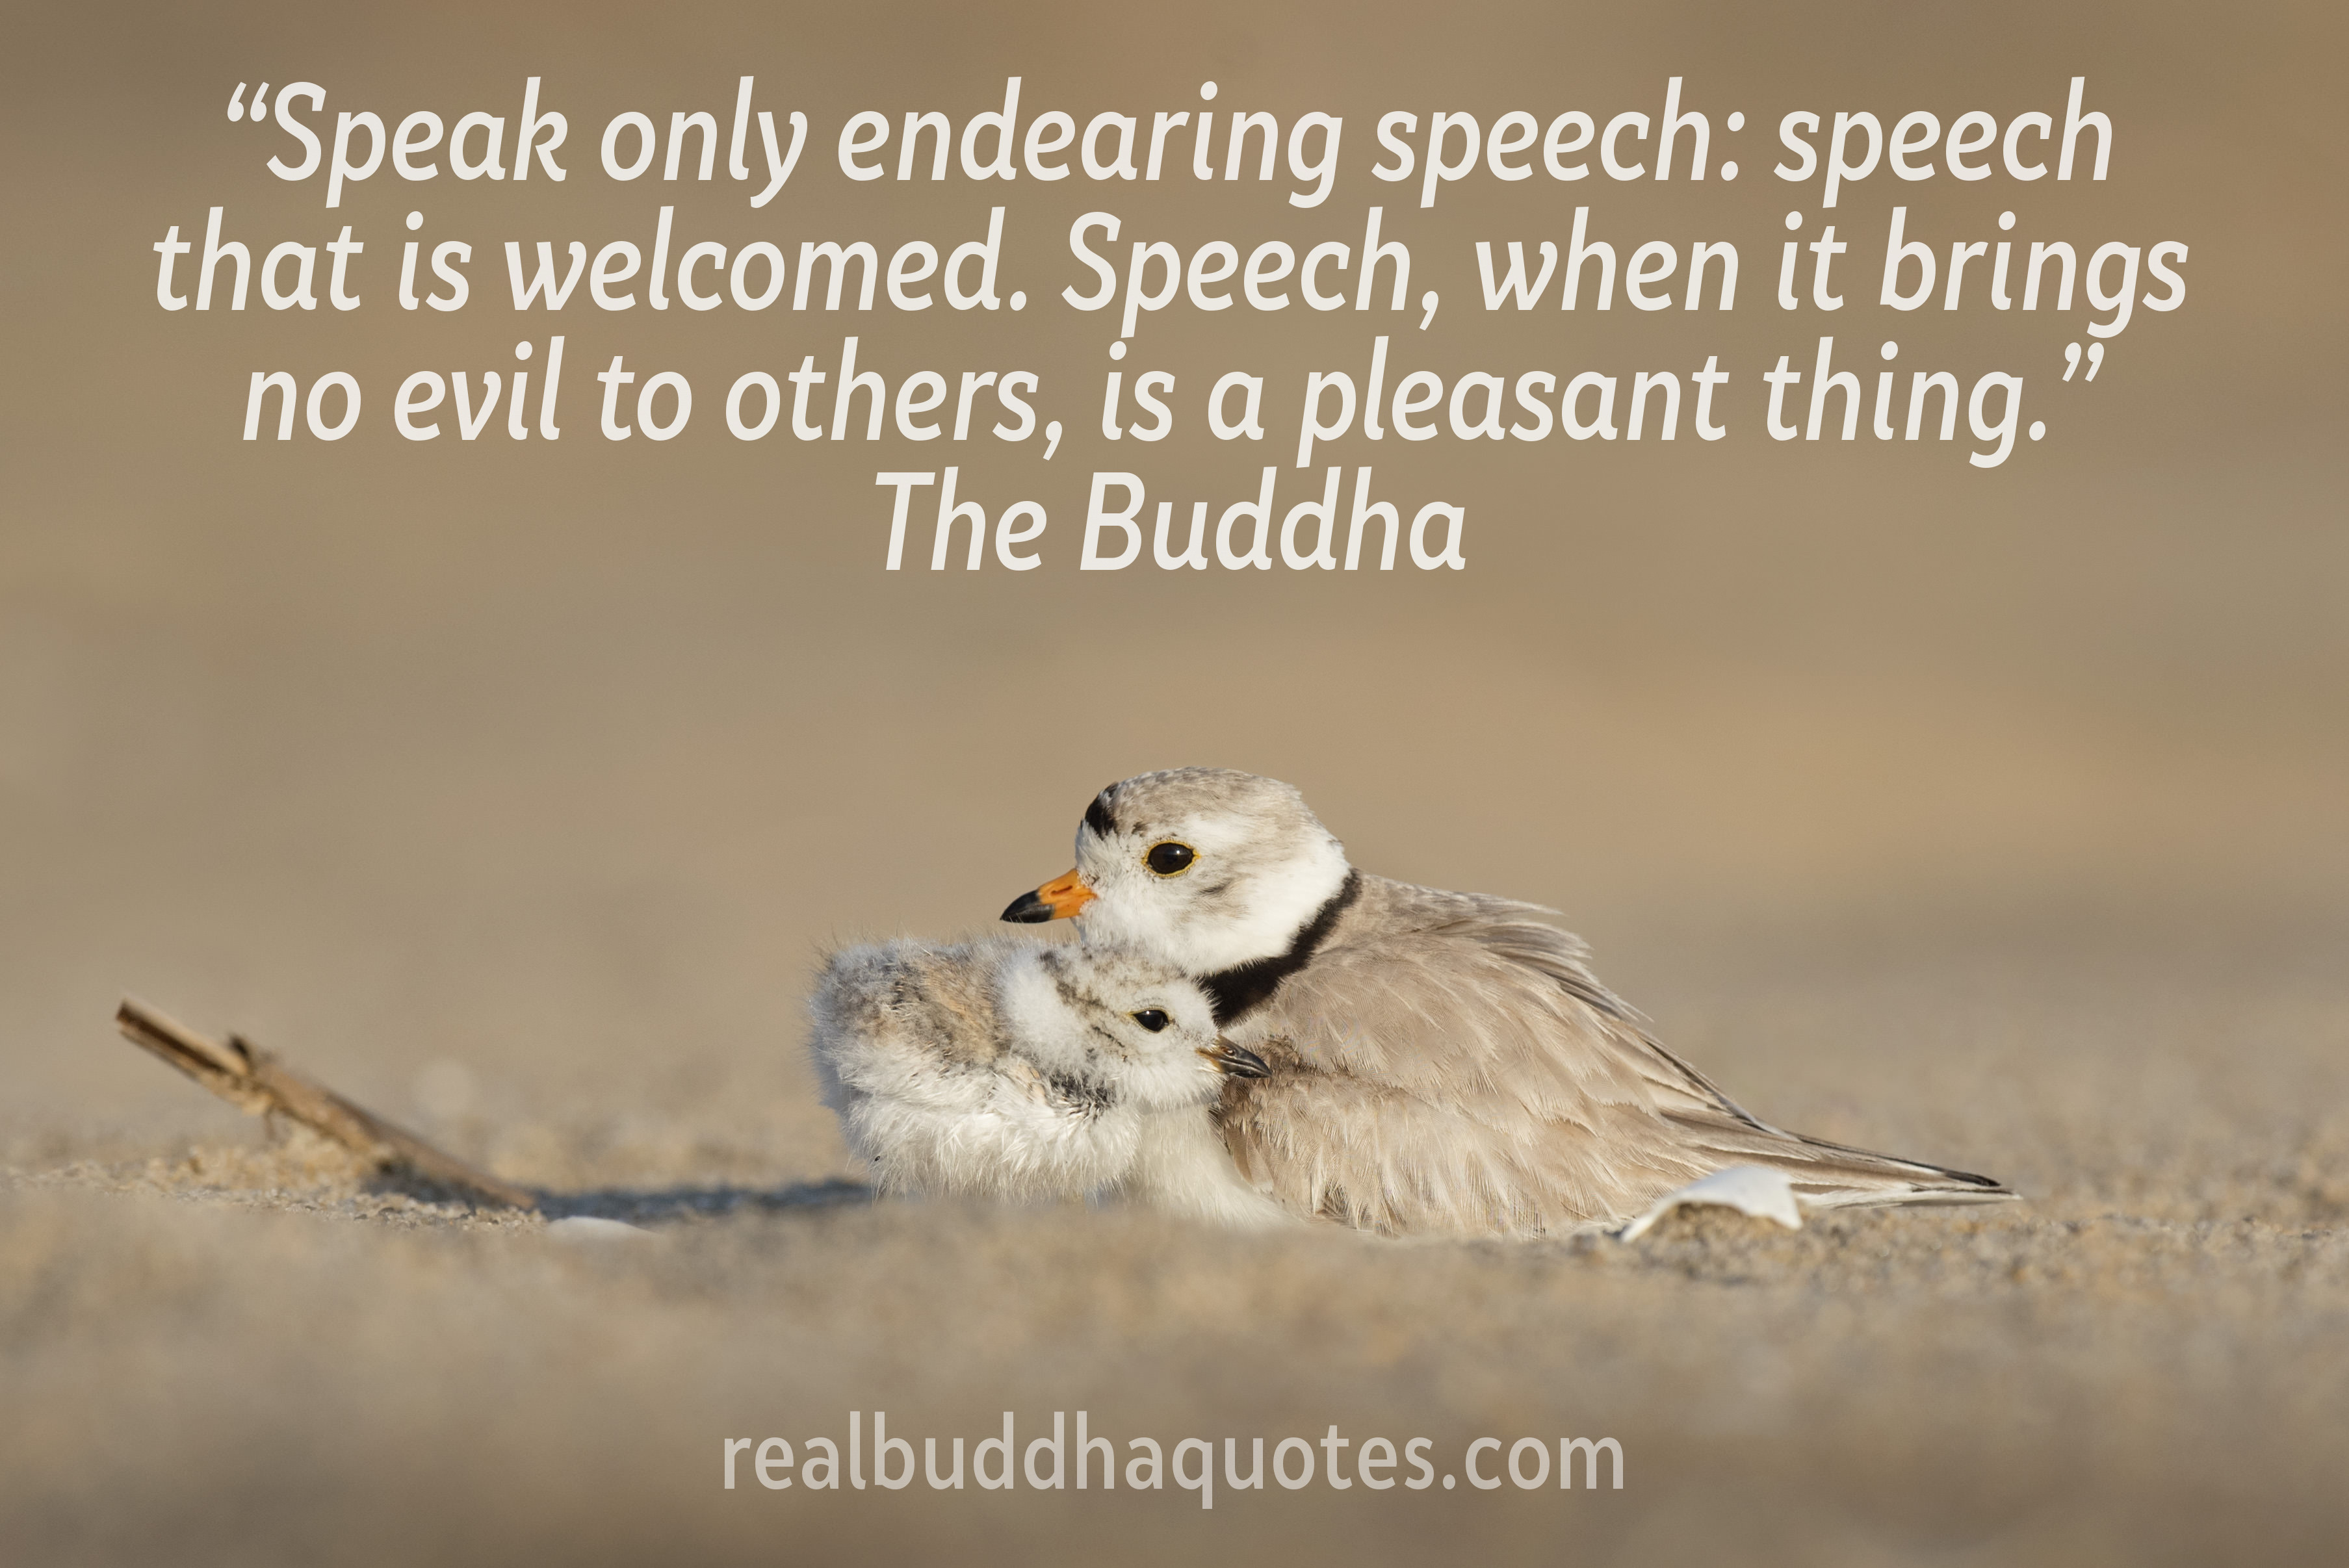 Real Buddha Quotes Animal And Compassion Quotes Buddha Picture